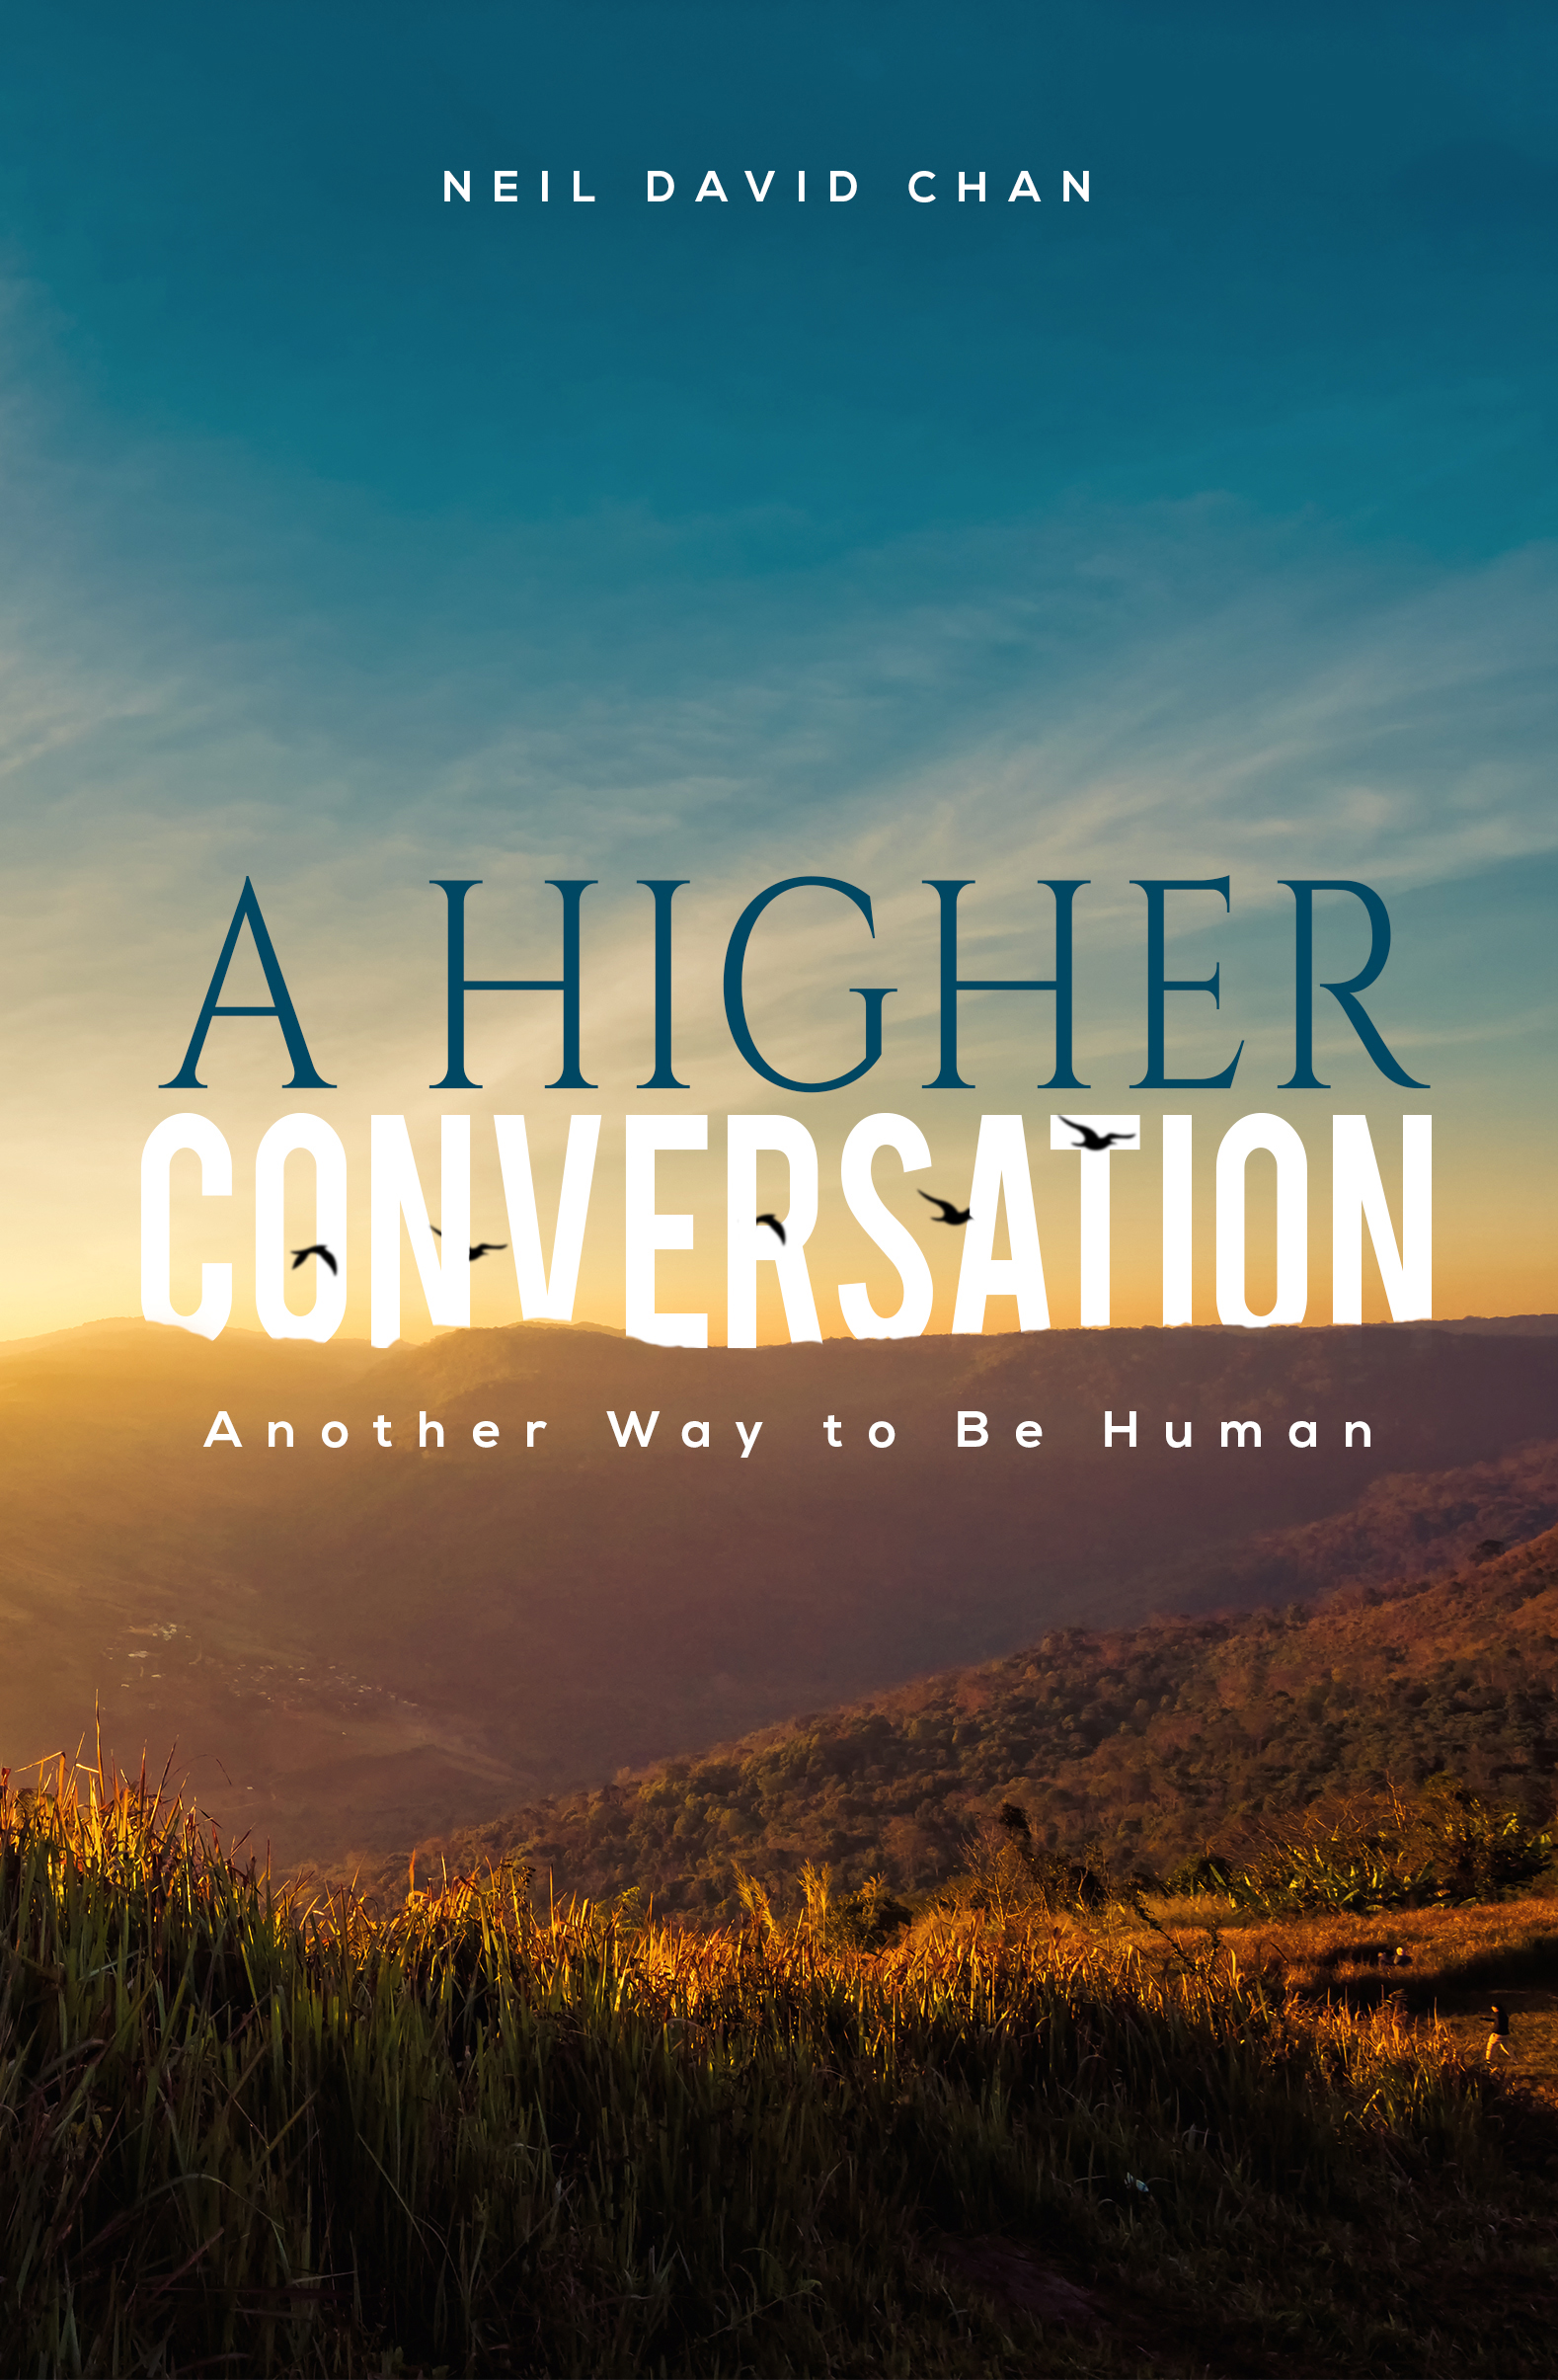 A HIGHER CONVERSATION